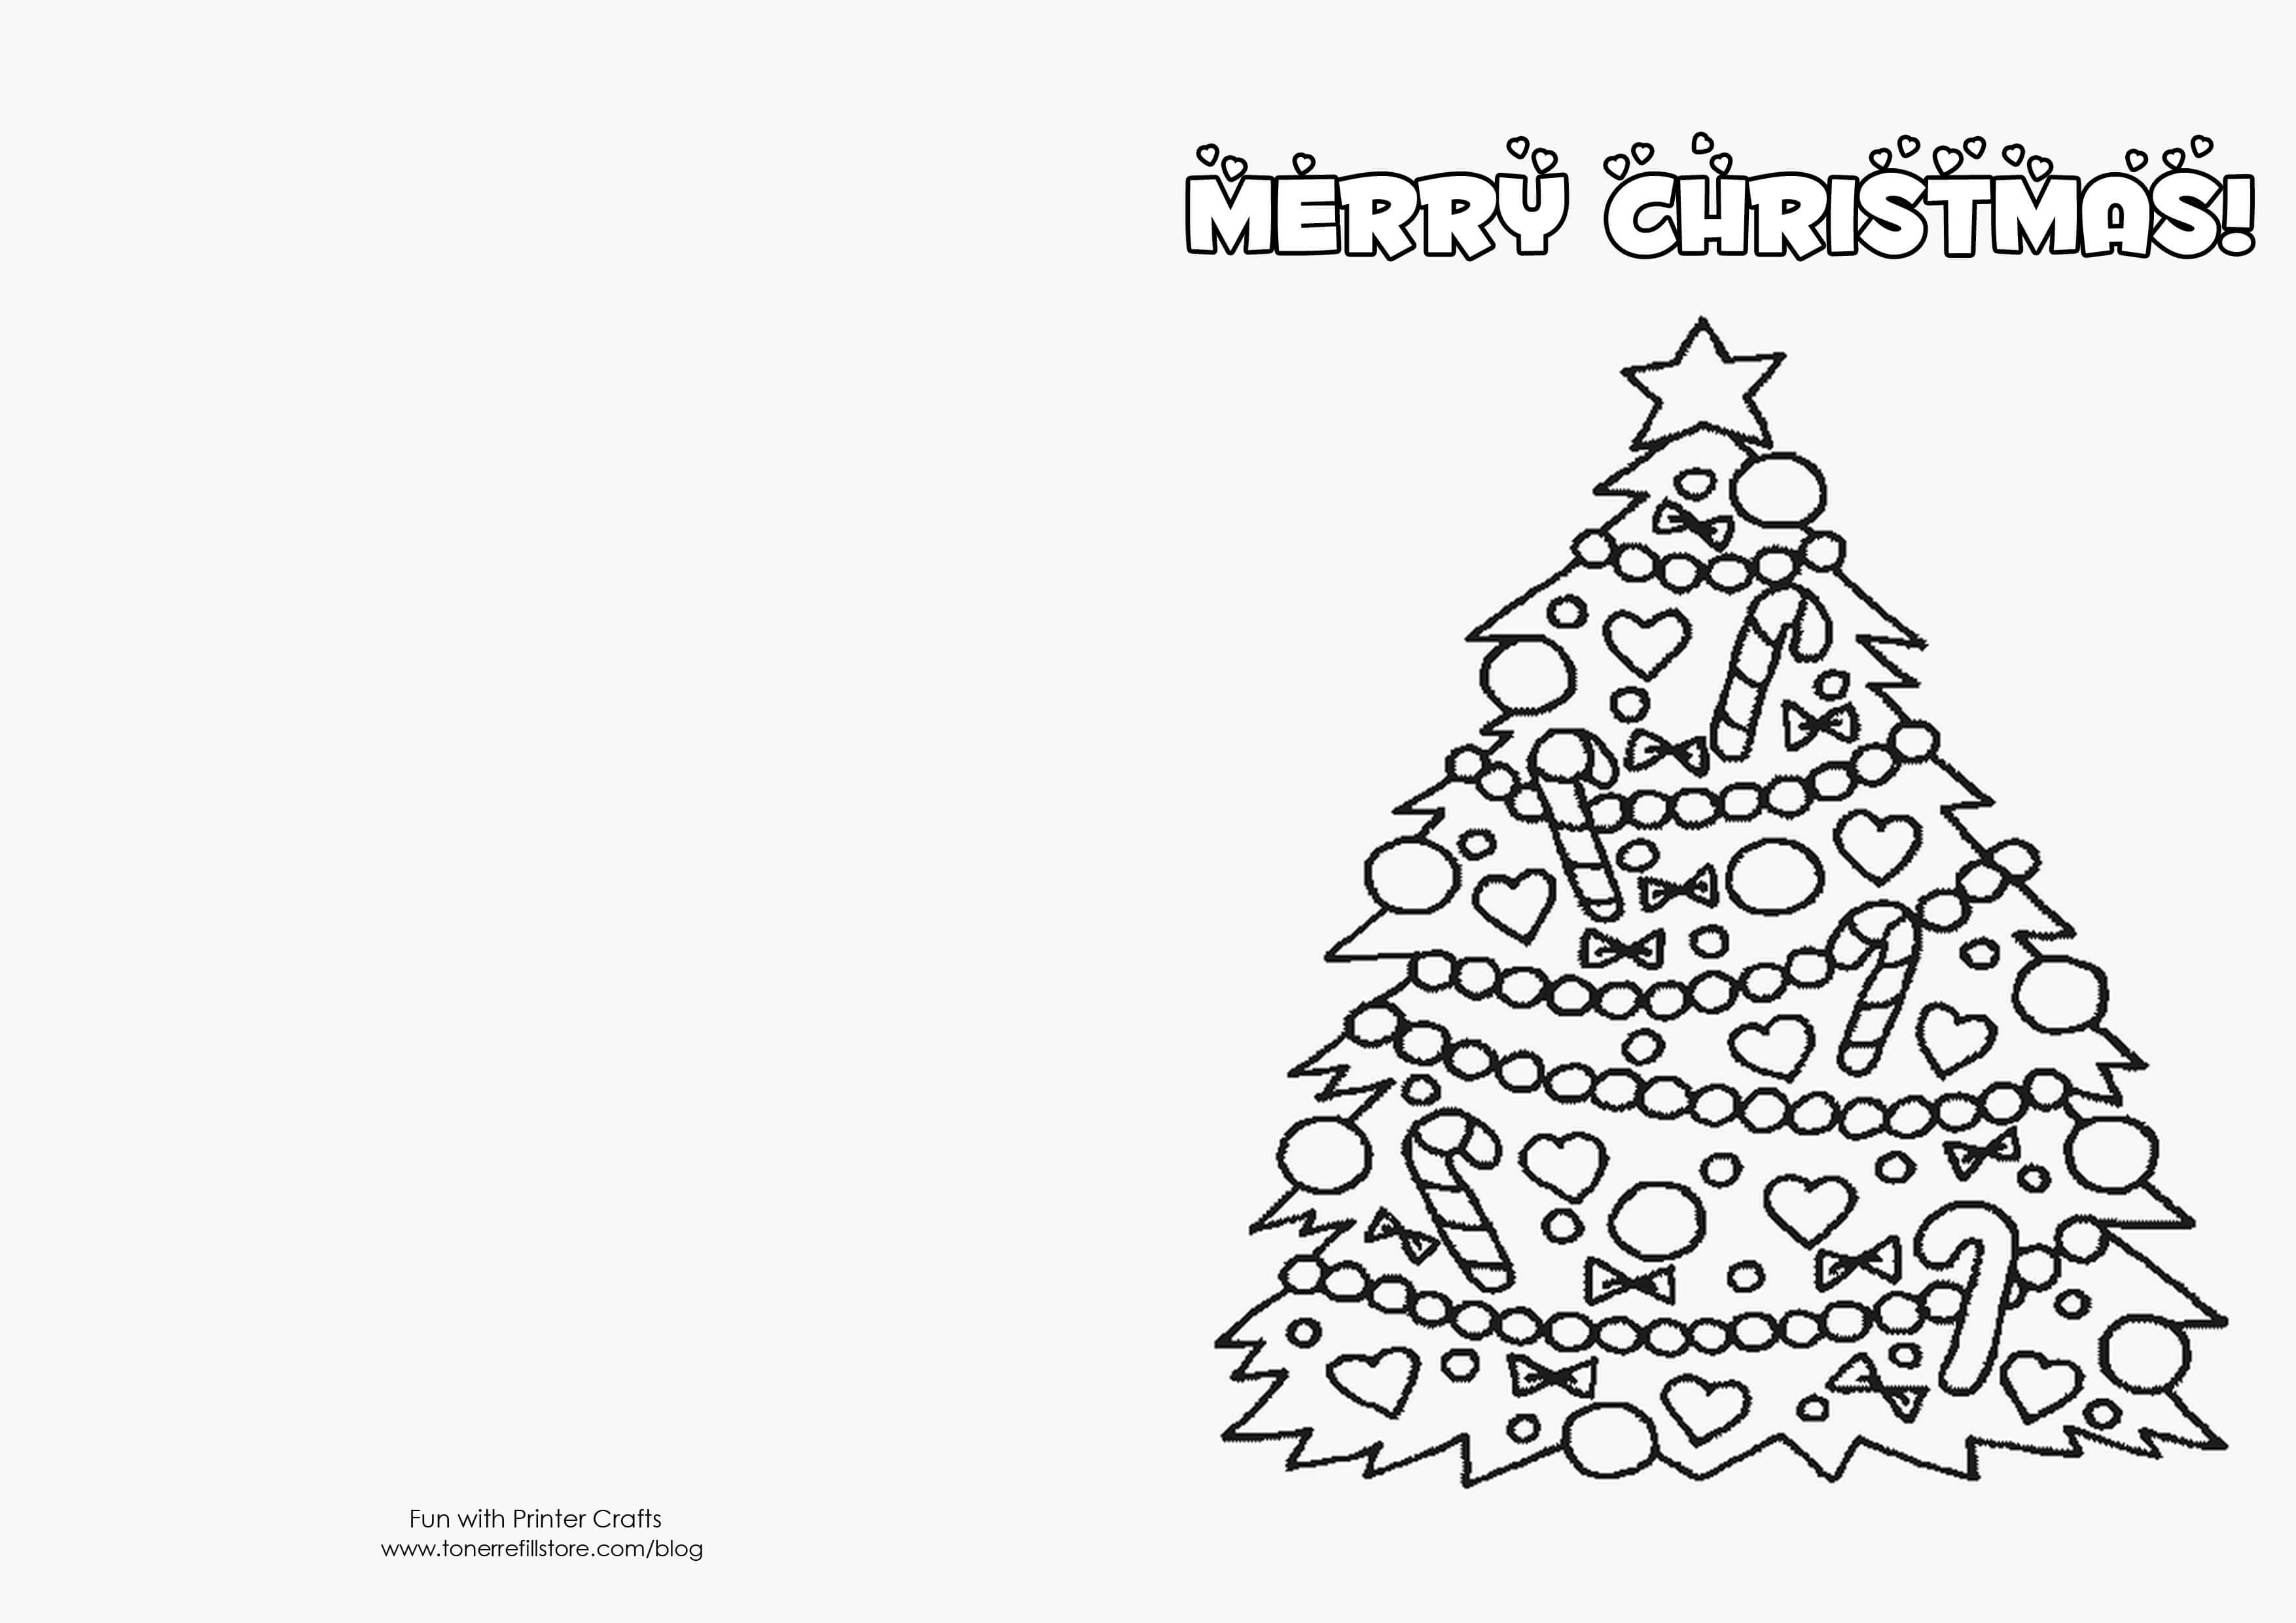 Printable Christmas Card Templates (86+ Images In Collection Within Printable Holiday Card Templates